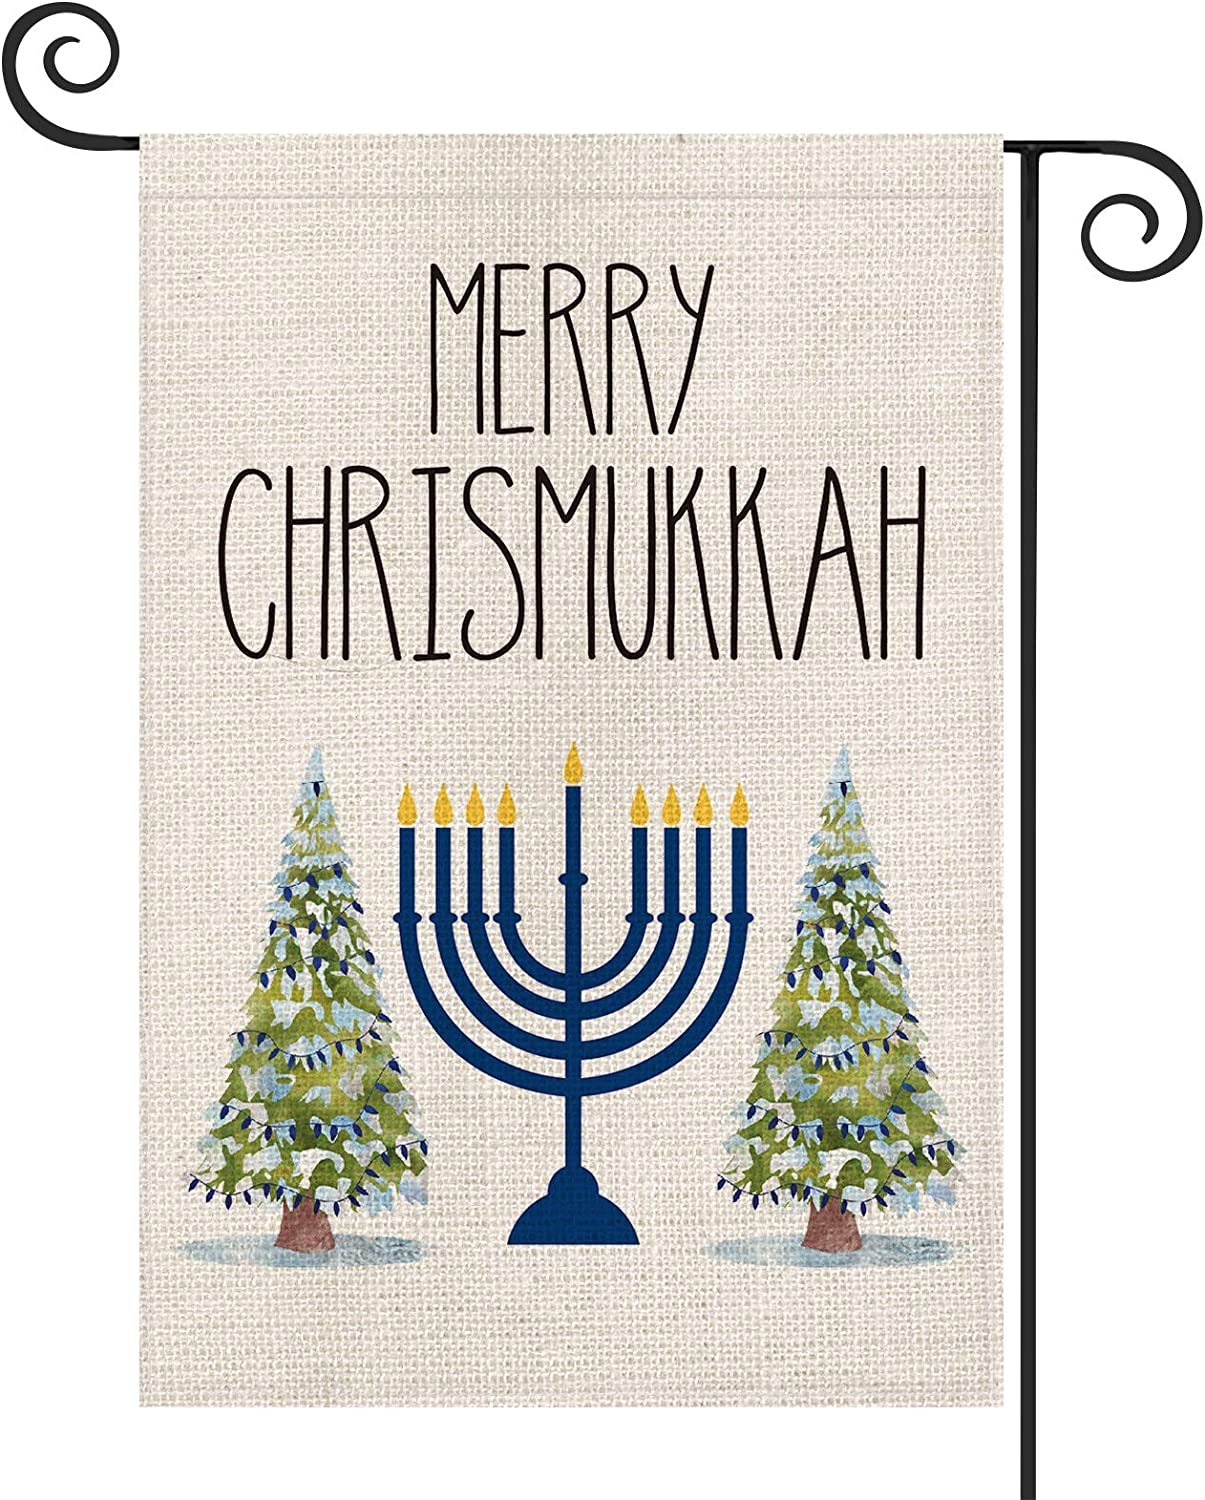 AVOIN Merry Chrismukkah Menorah Christmas Tree Garden Flag Vertical Double Sized, Winter Holiday Jewish Party Yard Outdoor Decoration 12.5 x 18 Inch